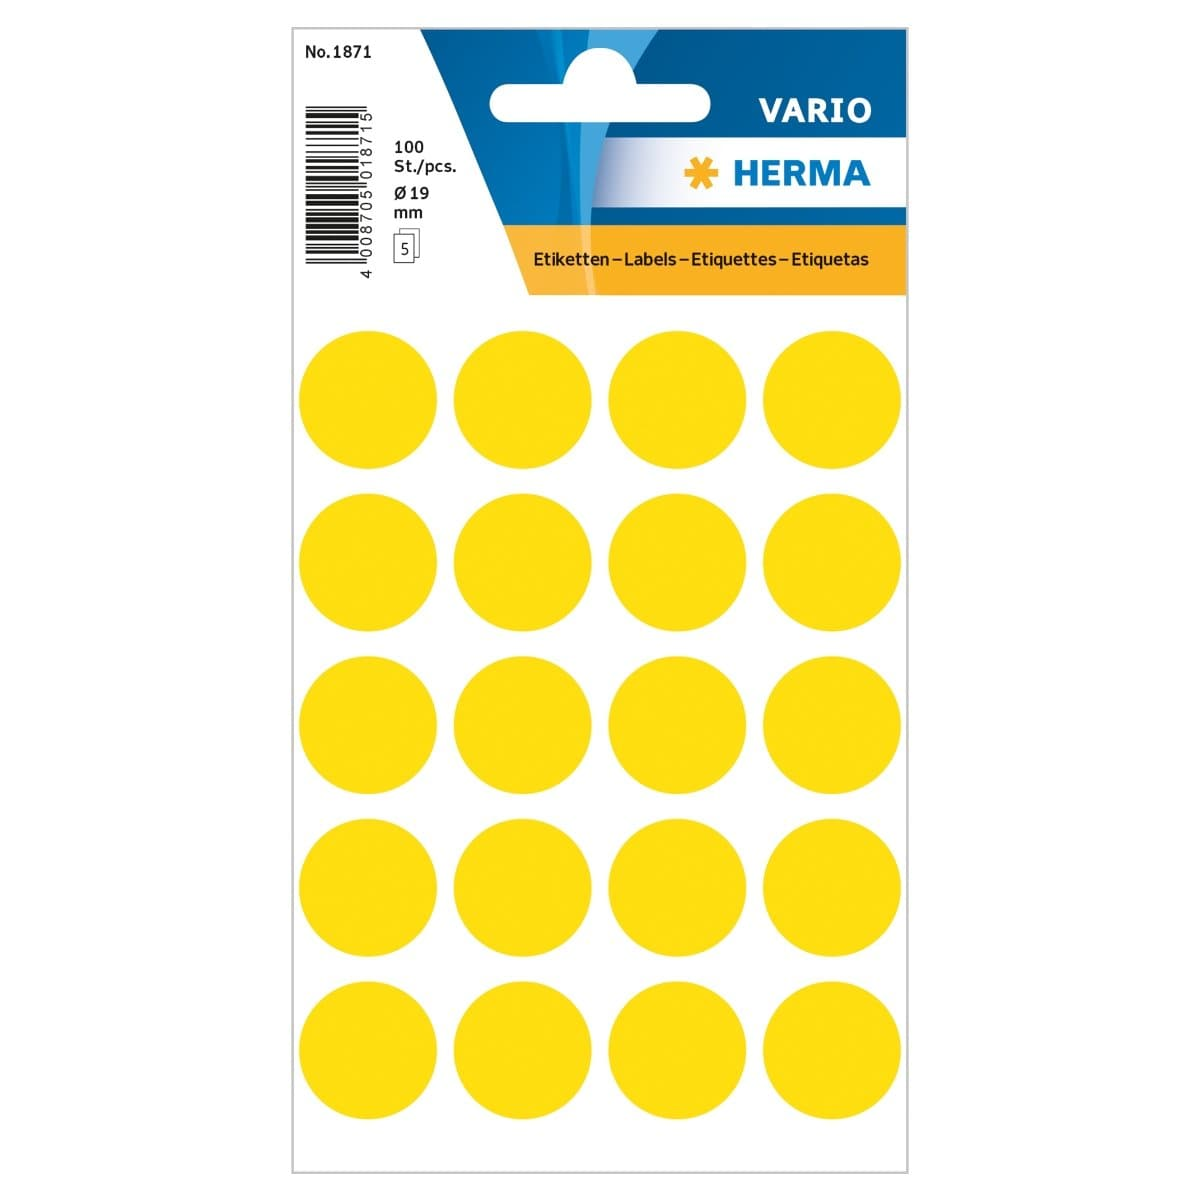 Herma Vario Sticker Color Dots, 19 mm, 100/pack, Yellow